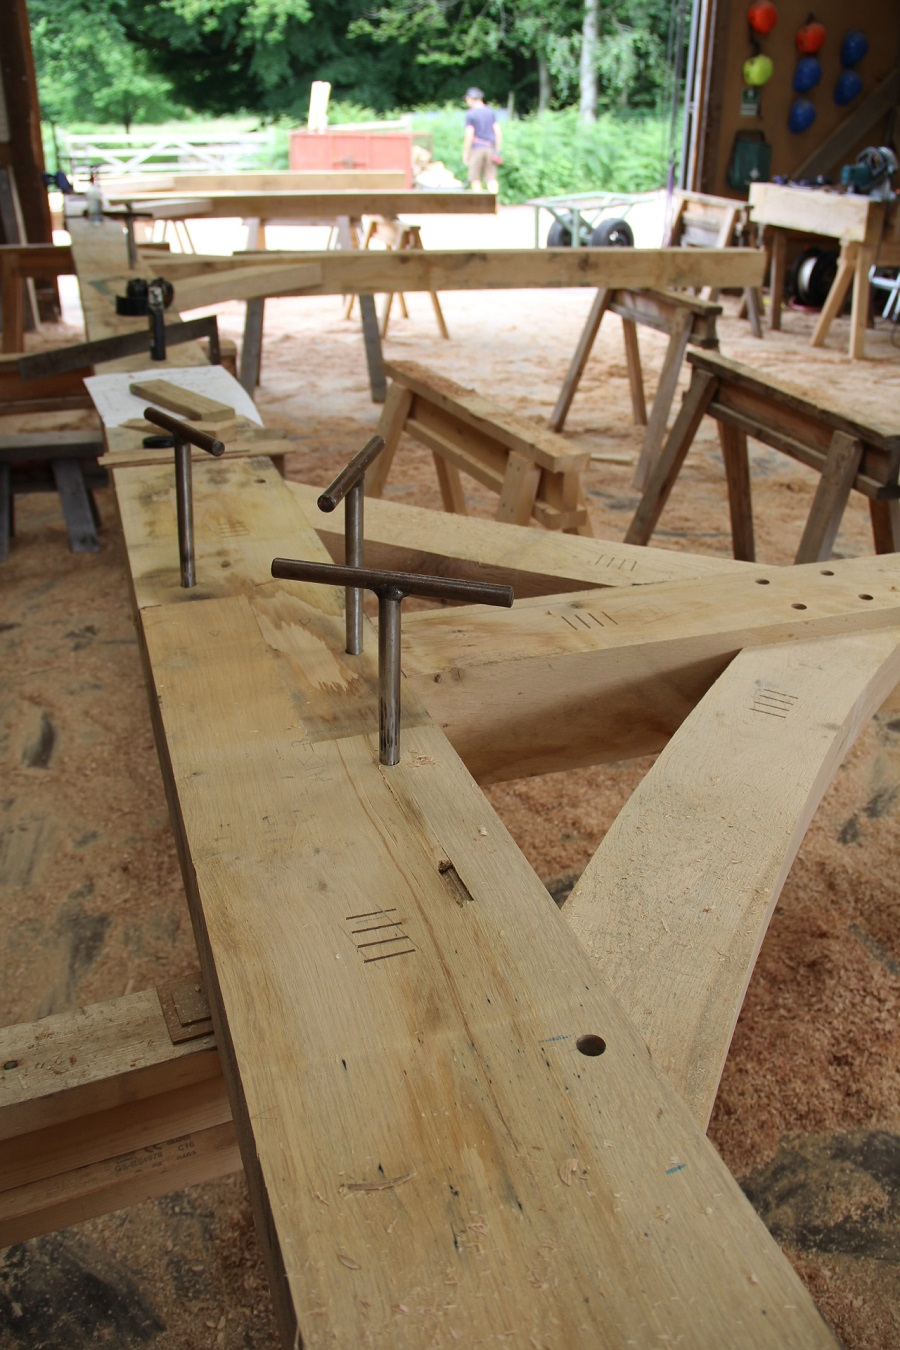 timber frame oak frame workshop